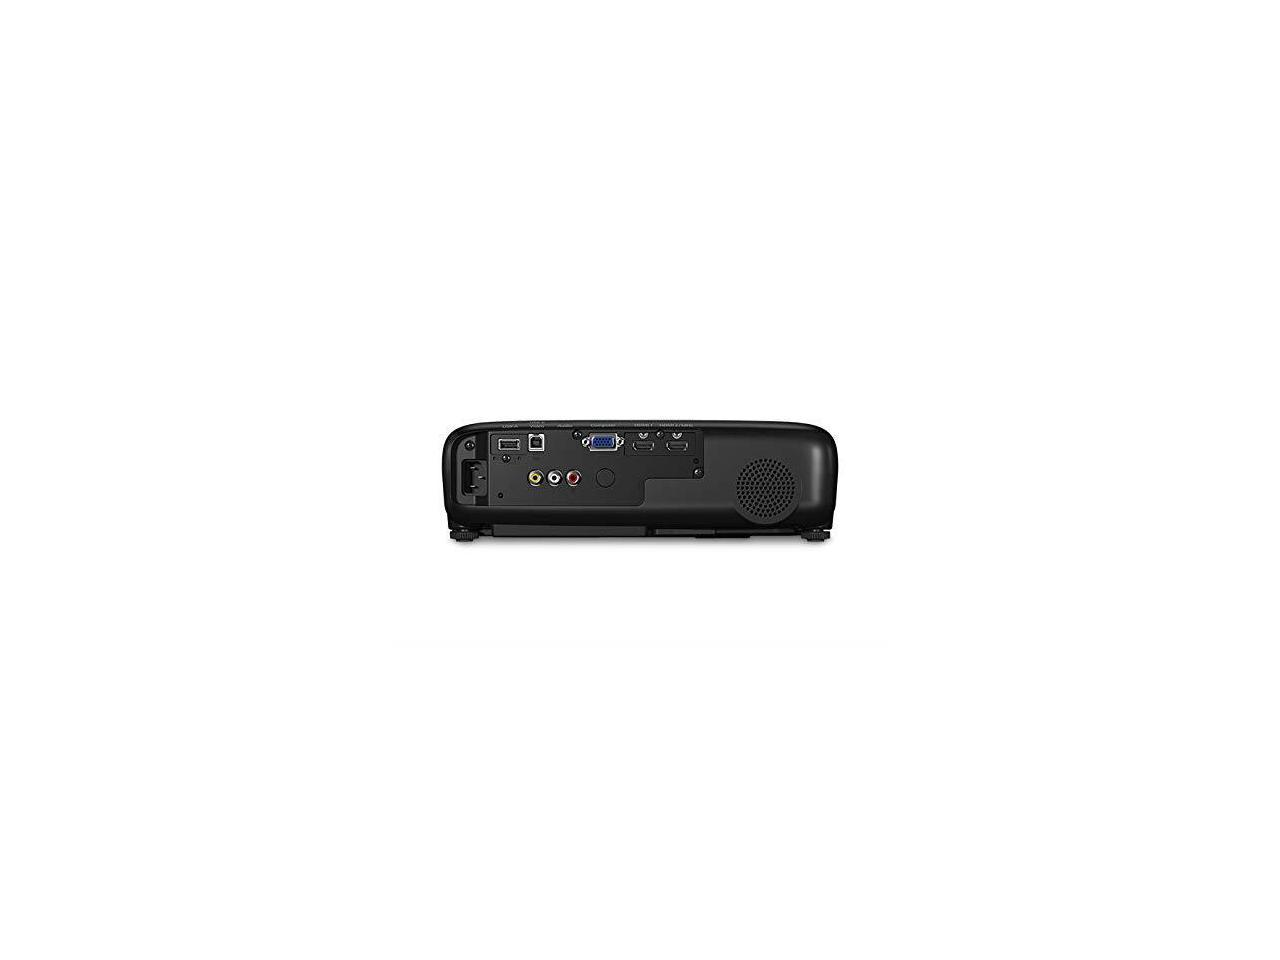 EPSON-PowerLite-1286-Wireless-WUXGA-3LCD-Projector-3600-Lumens-1920-x-1200-1-07 miniature 10